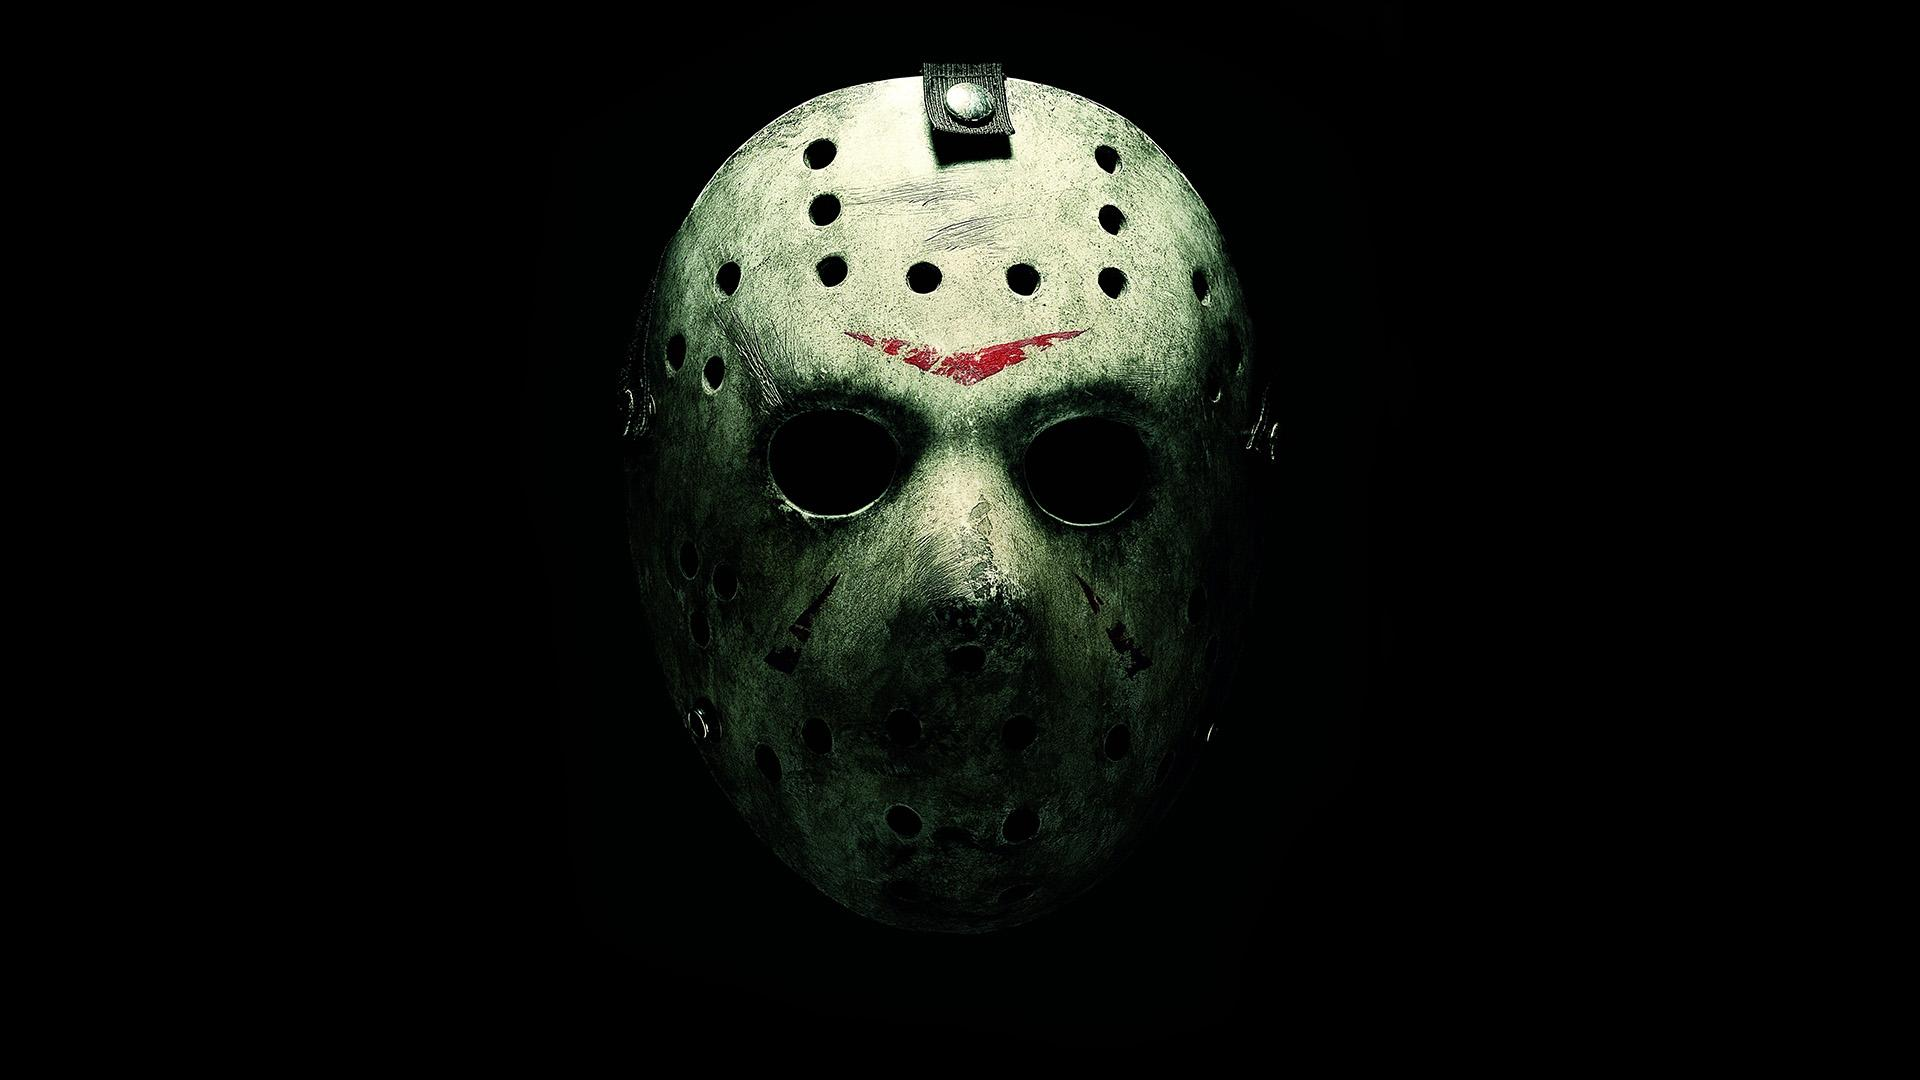 Friday the 13th - Péntek 13. (1980/2009)